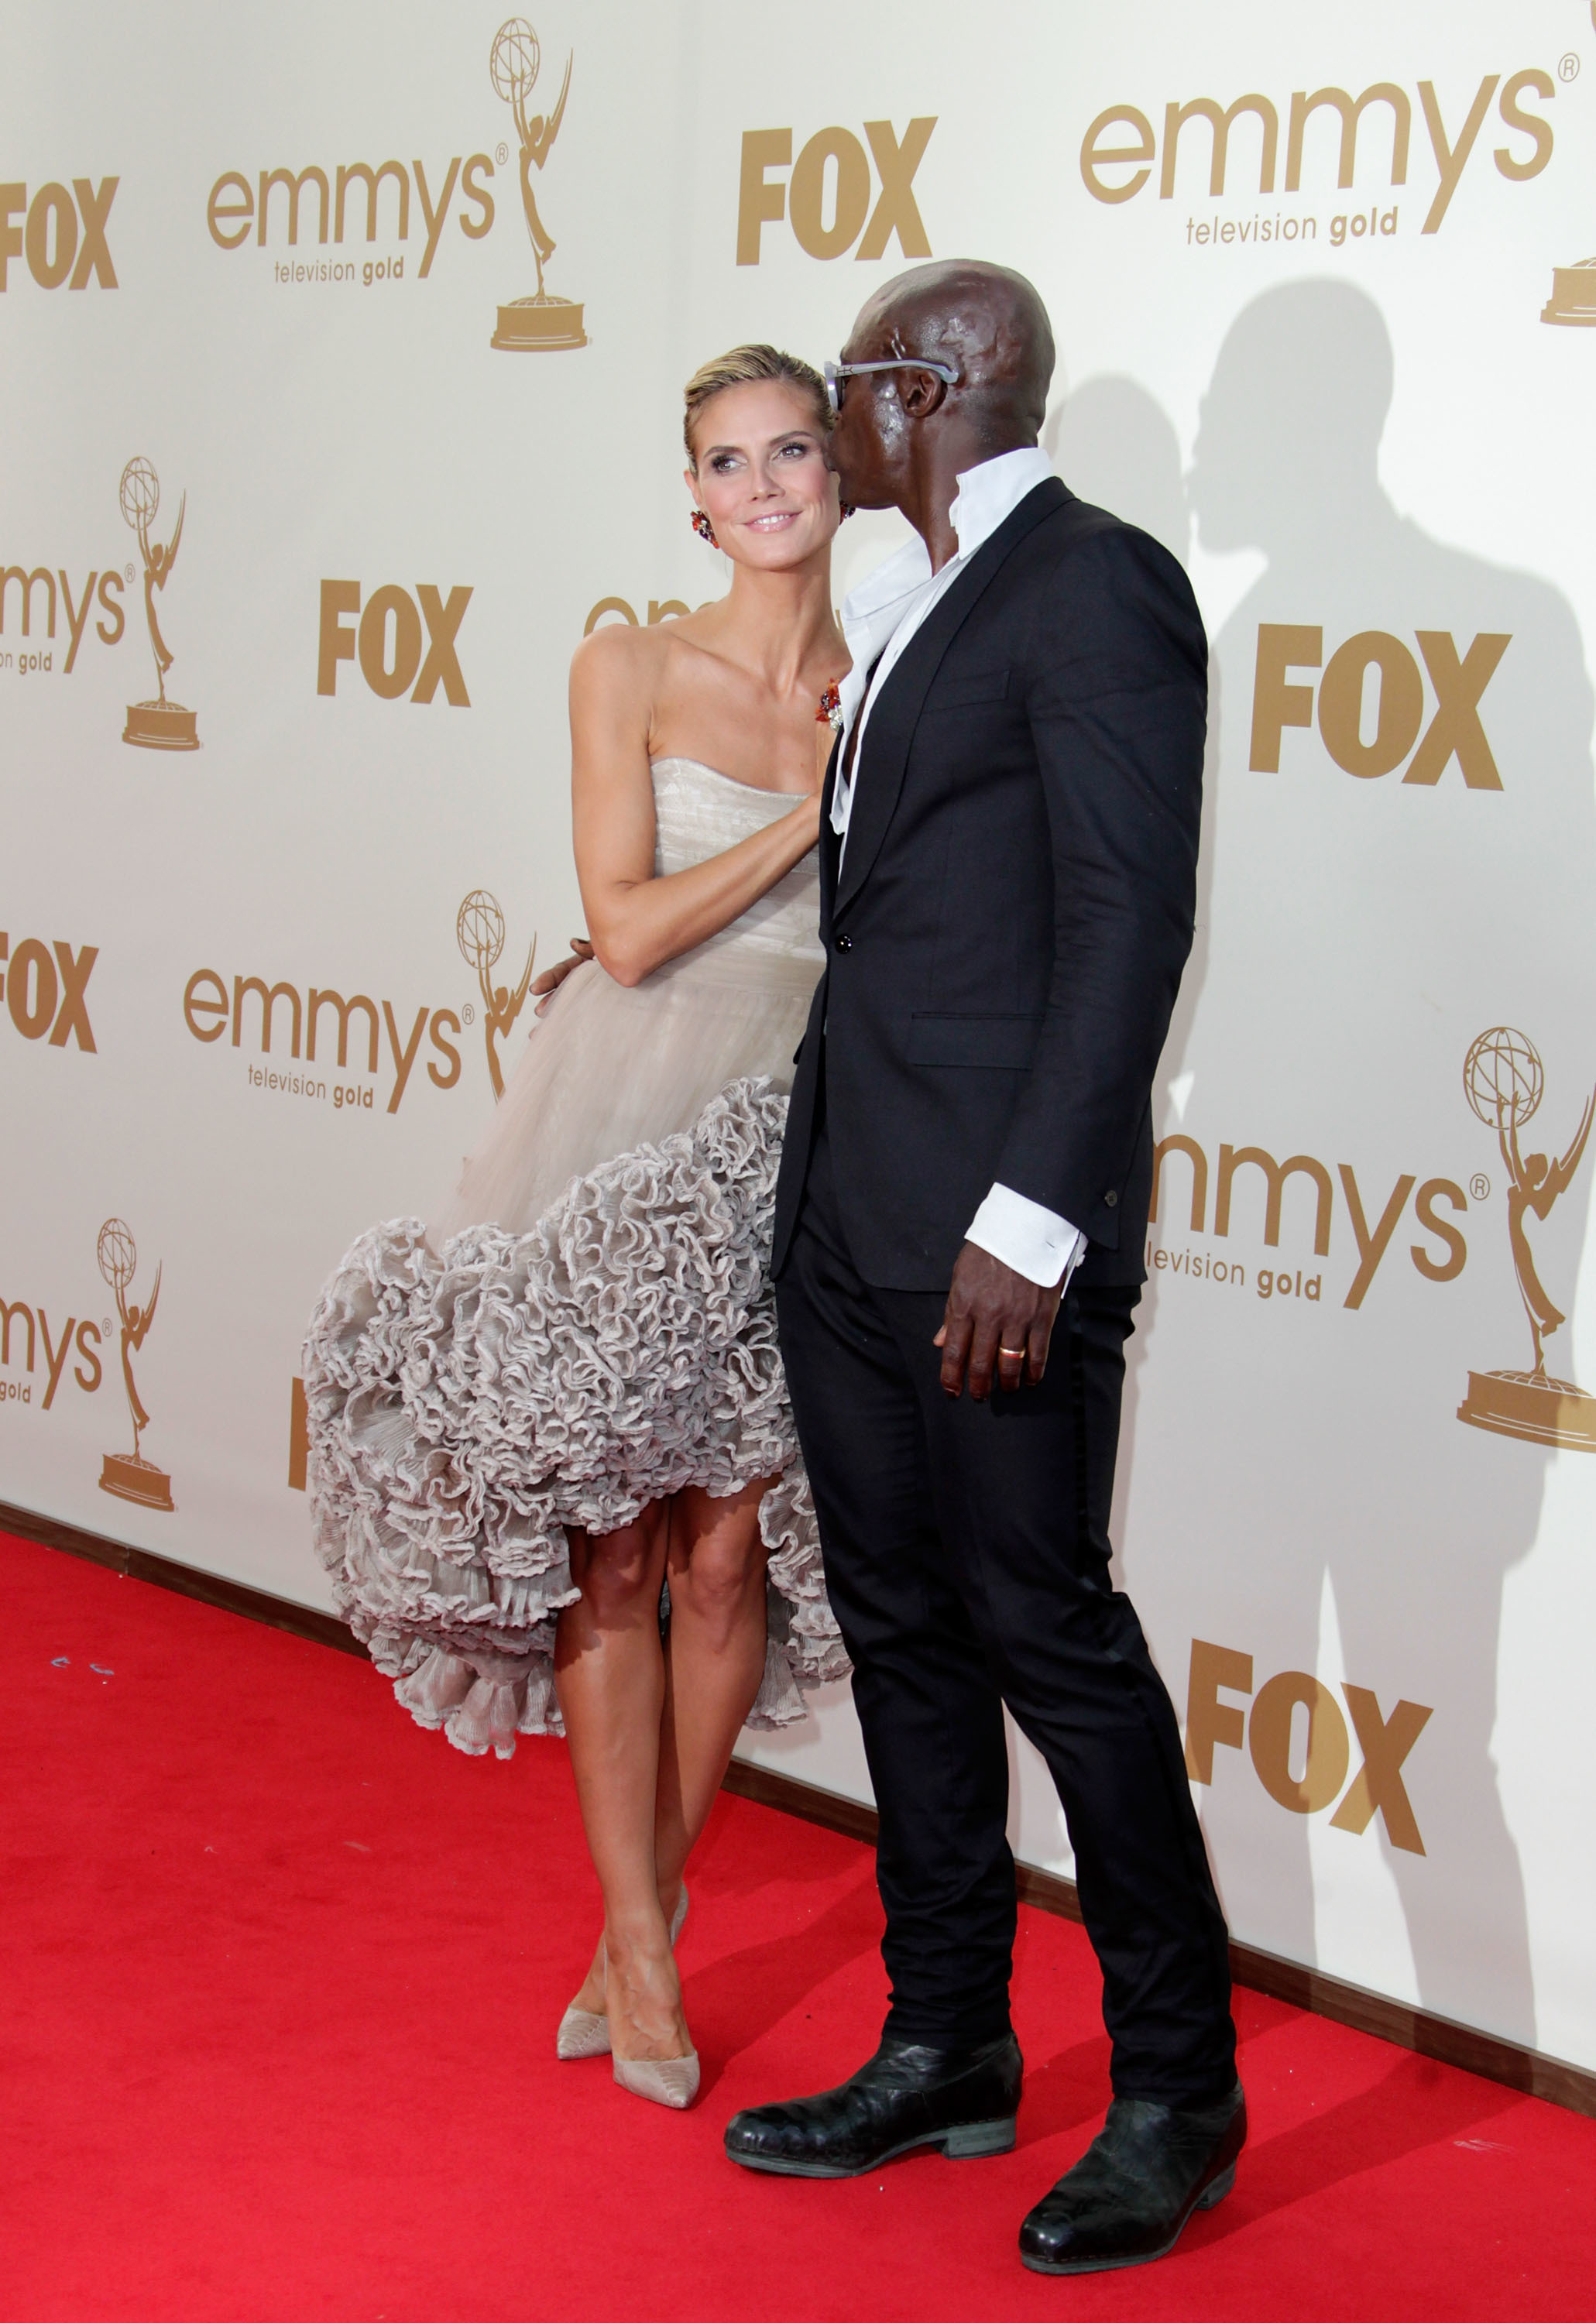 Heidi Klum reunites with Seal for dinner with their kids